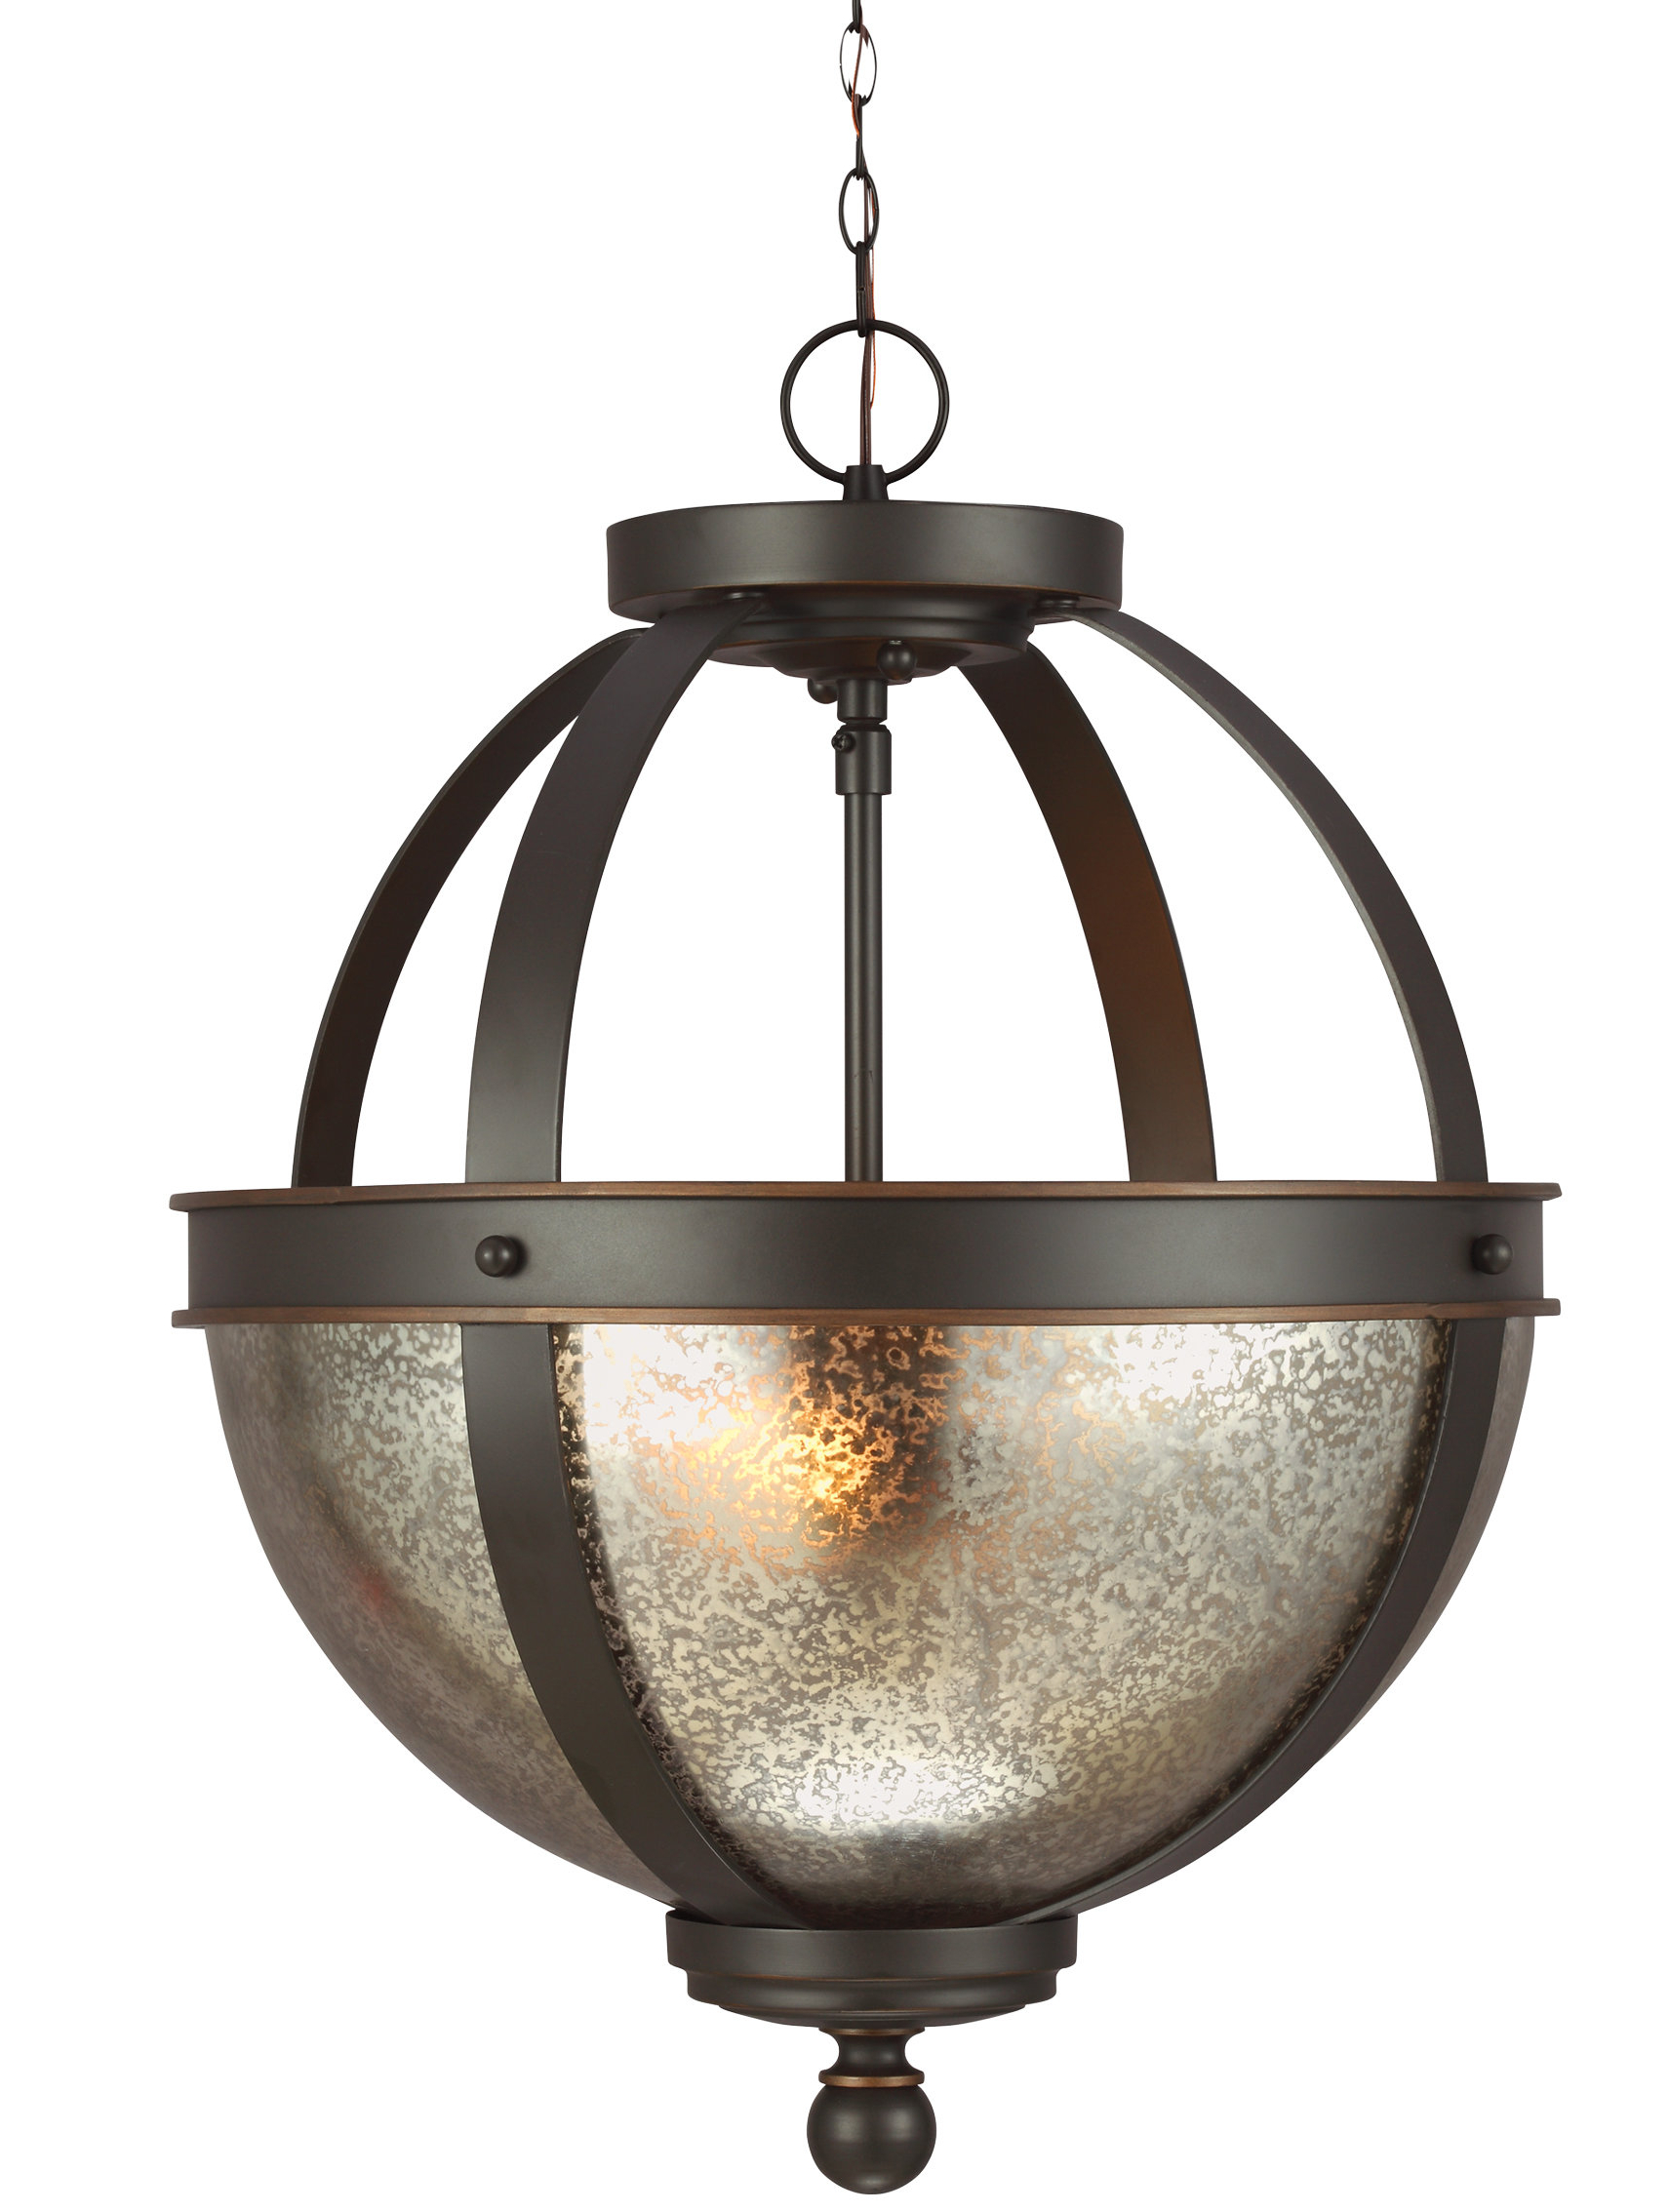 Kraker 1 Light Single Cylinder Pendants Intended For Best And Newest Doris 2 Light Single Globe Pendant (Gallery 10 of 25)